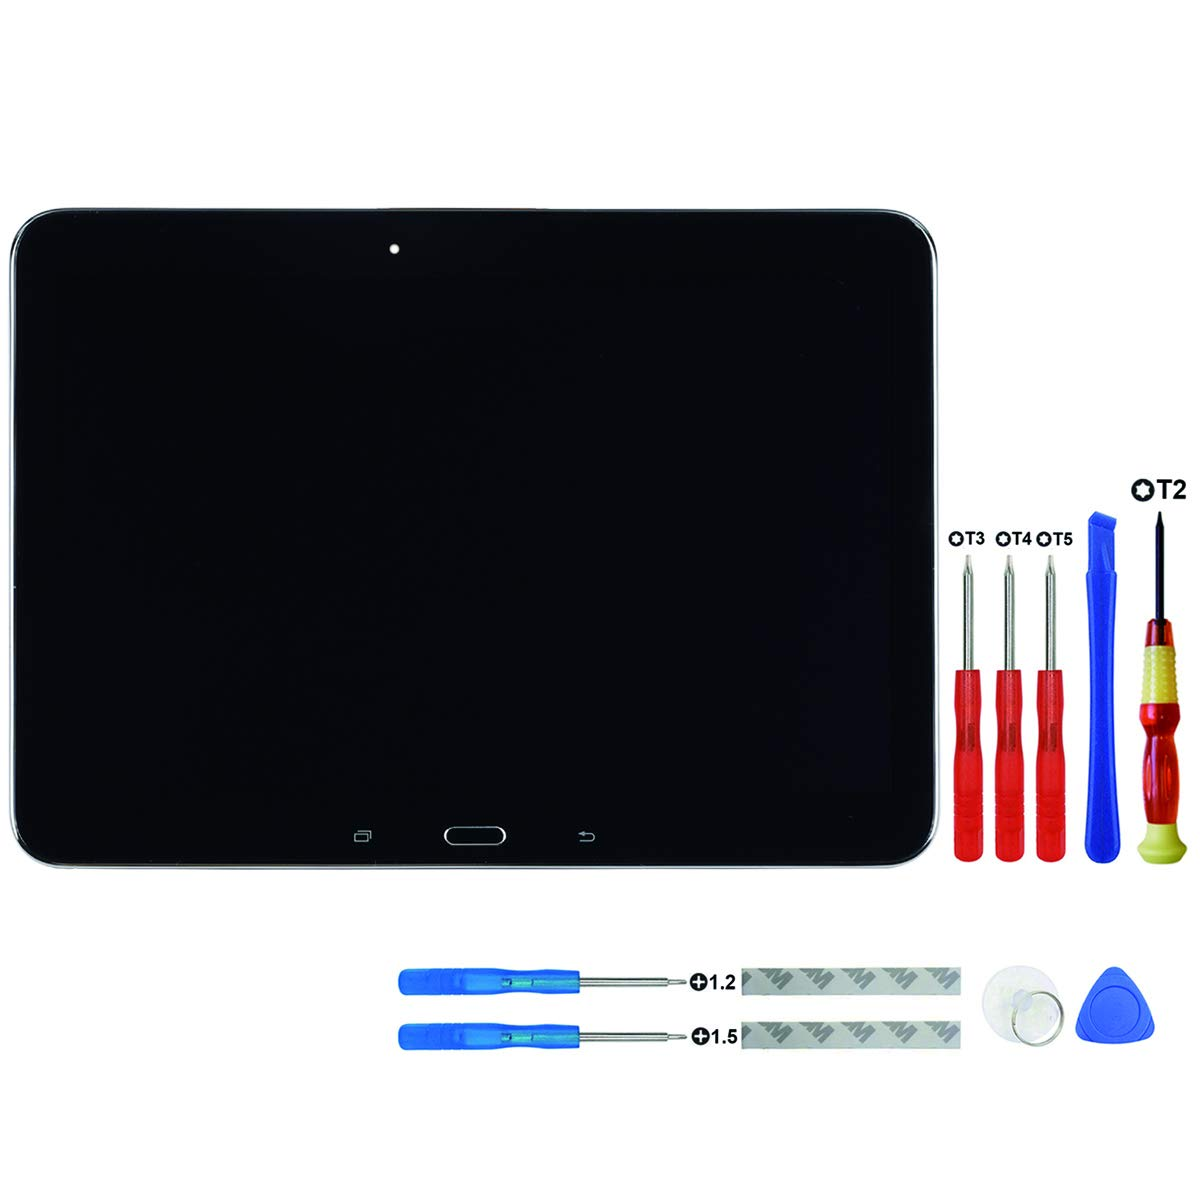 Swark LCD Display Compatible with Samsung Galaxy Tab Tab 4 10.1 (SM-T530, SM-T531, SM-T535) (Black with Frame) Touch Screen Digitizer Replacement